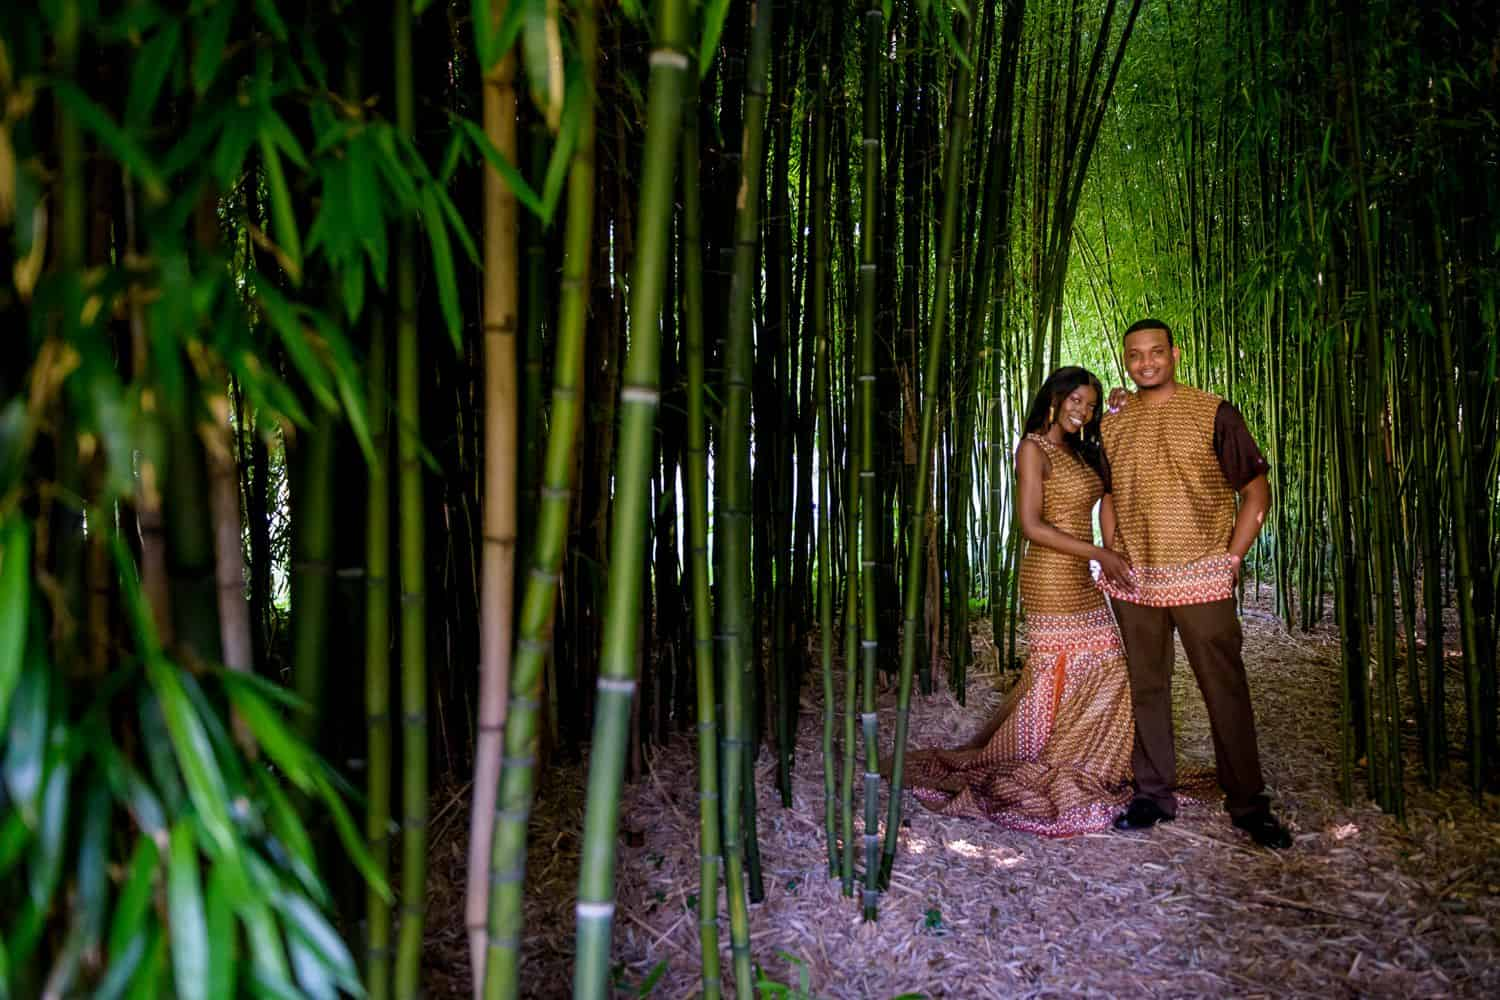 A Black couple poses wearing traditional African attire surrounded by towering bamboo shoots